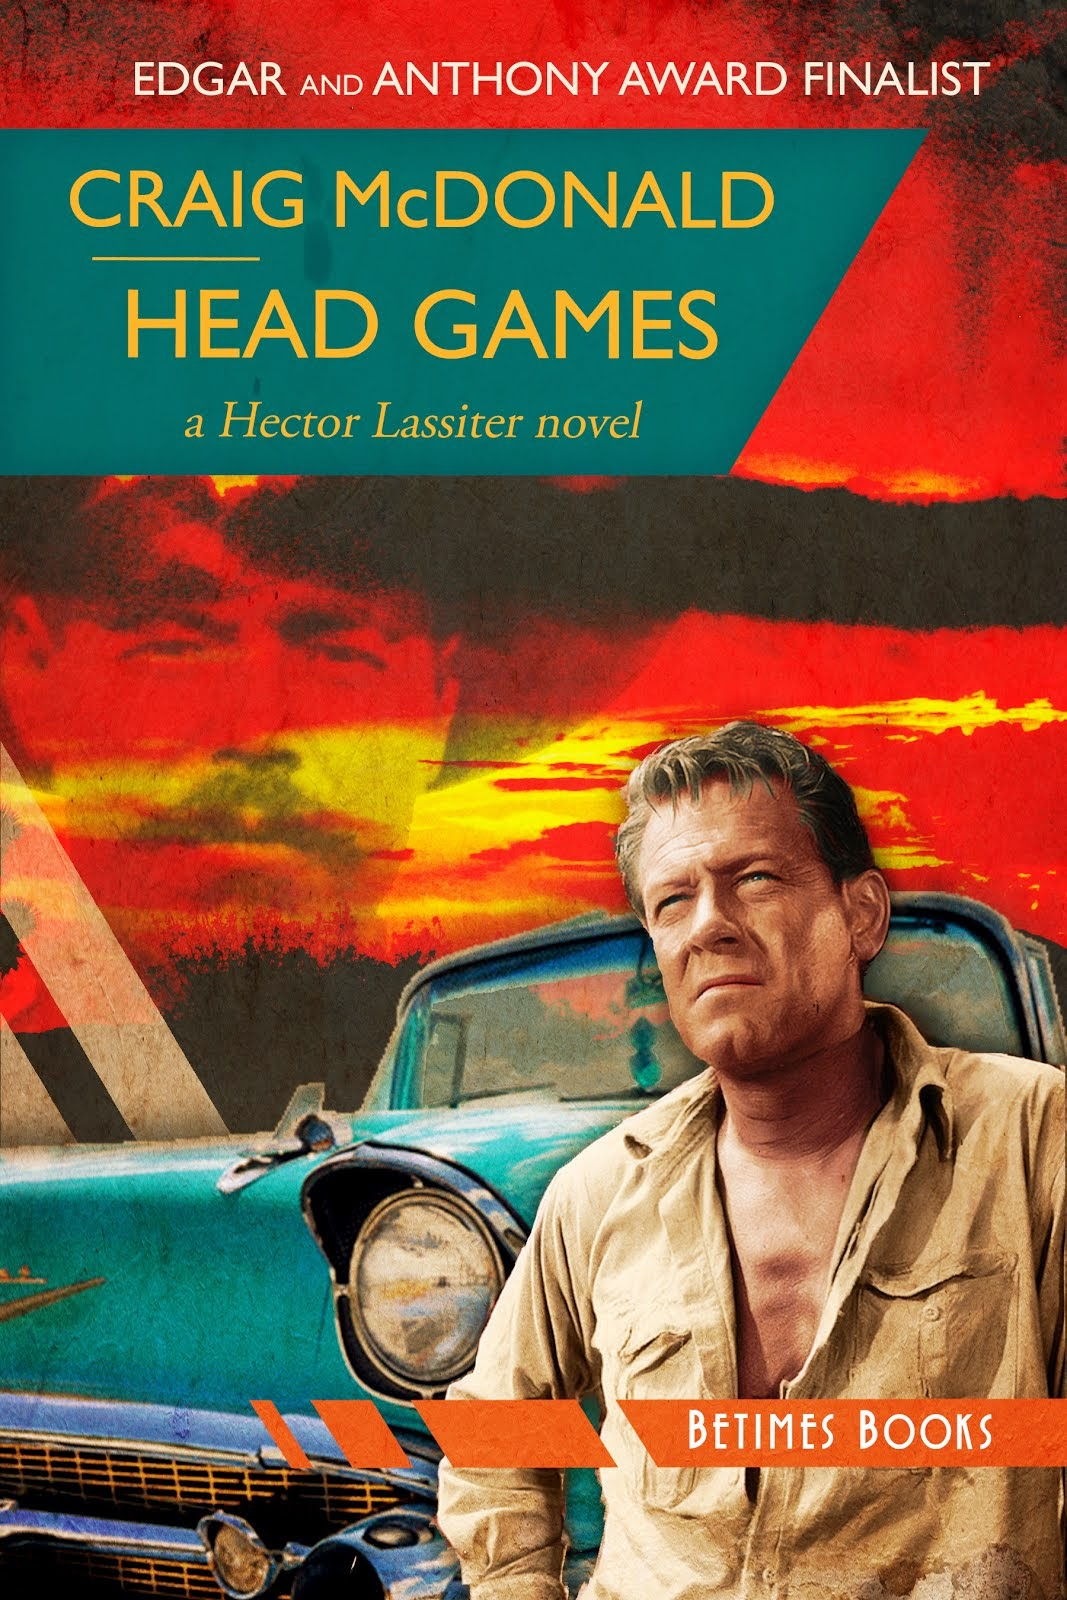 HEAD GAMES (HECTOR LASSITER SERIES #7)